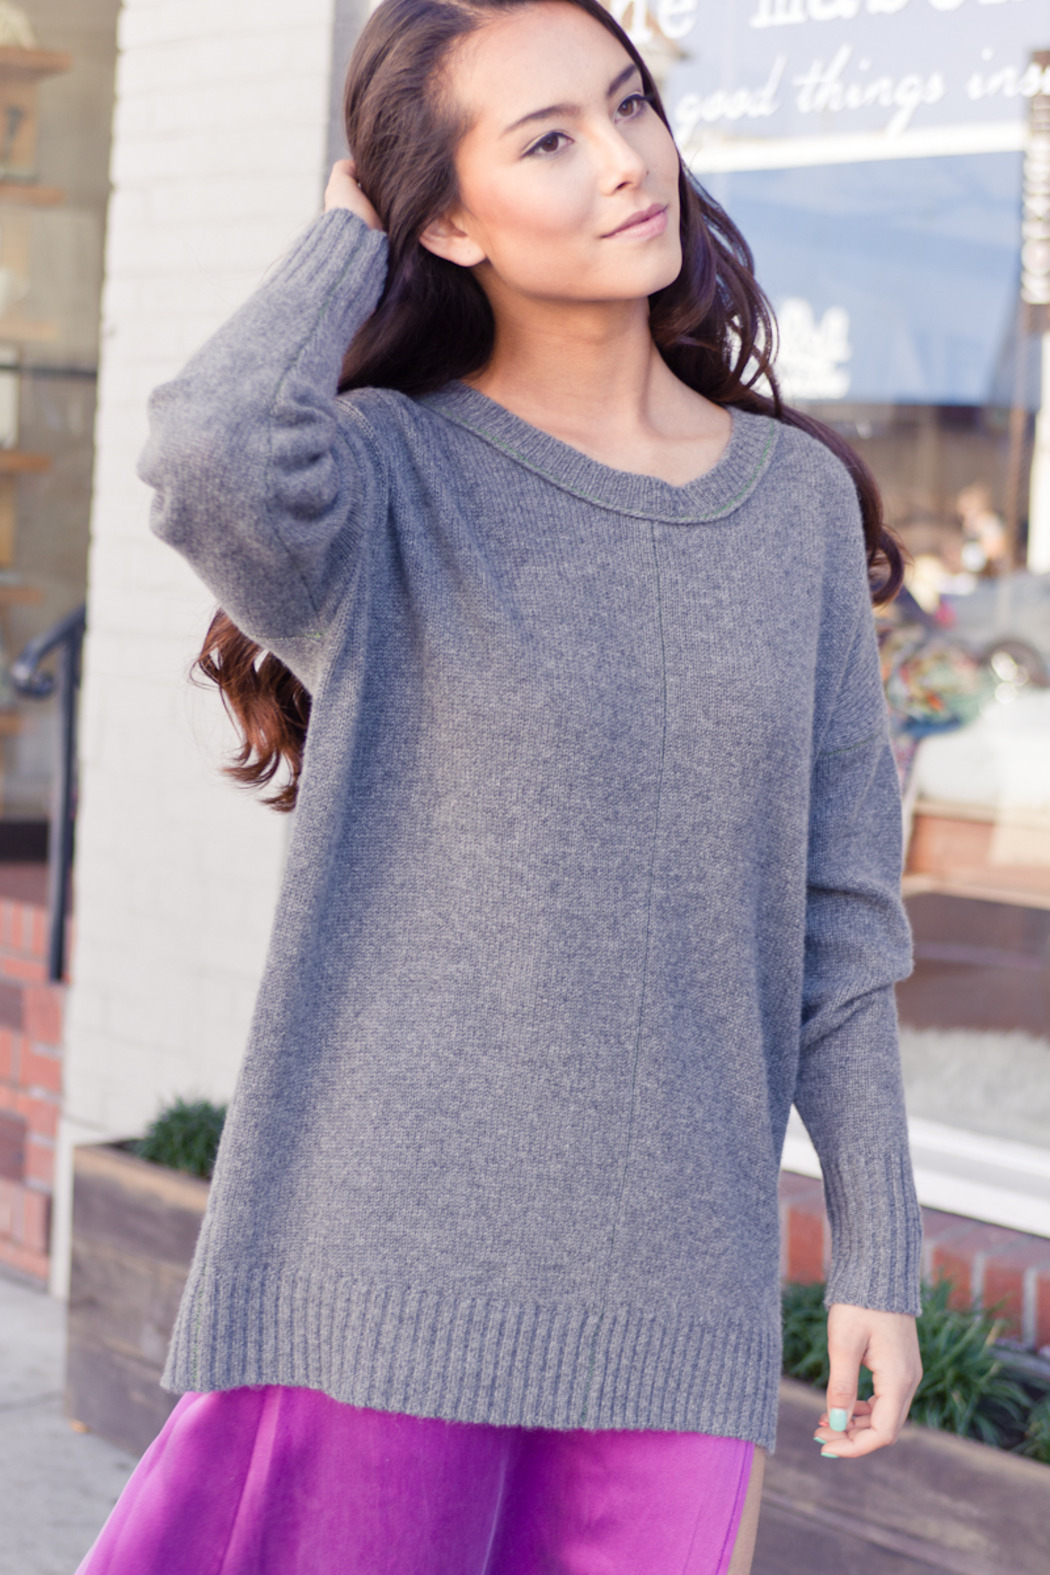 27 Miles Malibu Boyfriend Style Sweater from Marina by Wh!te Label ...